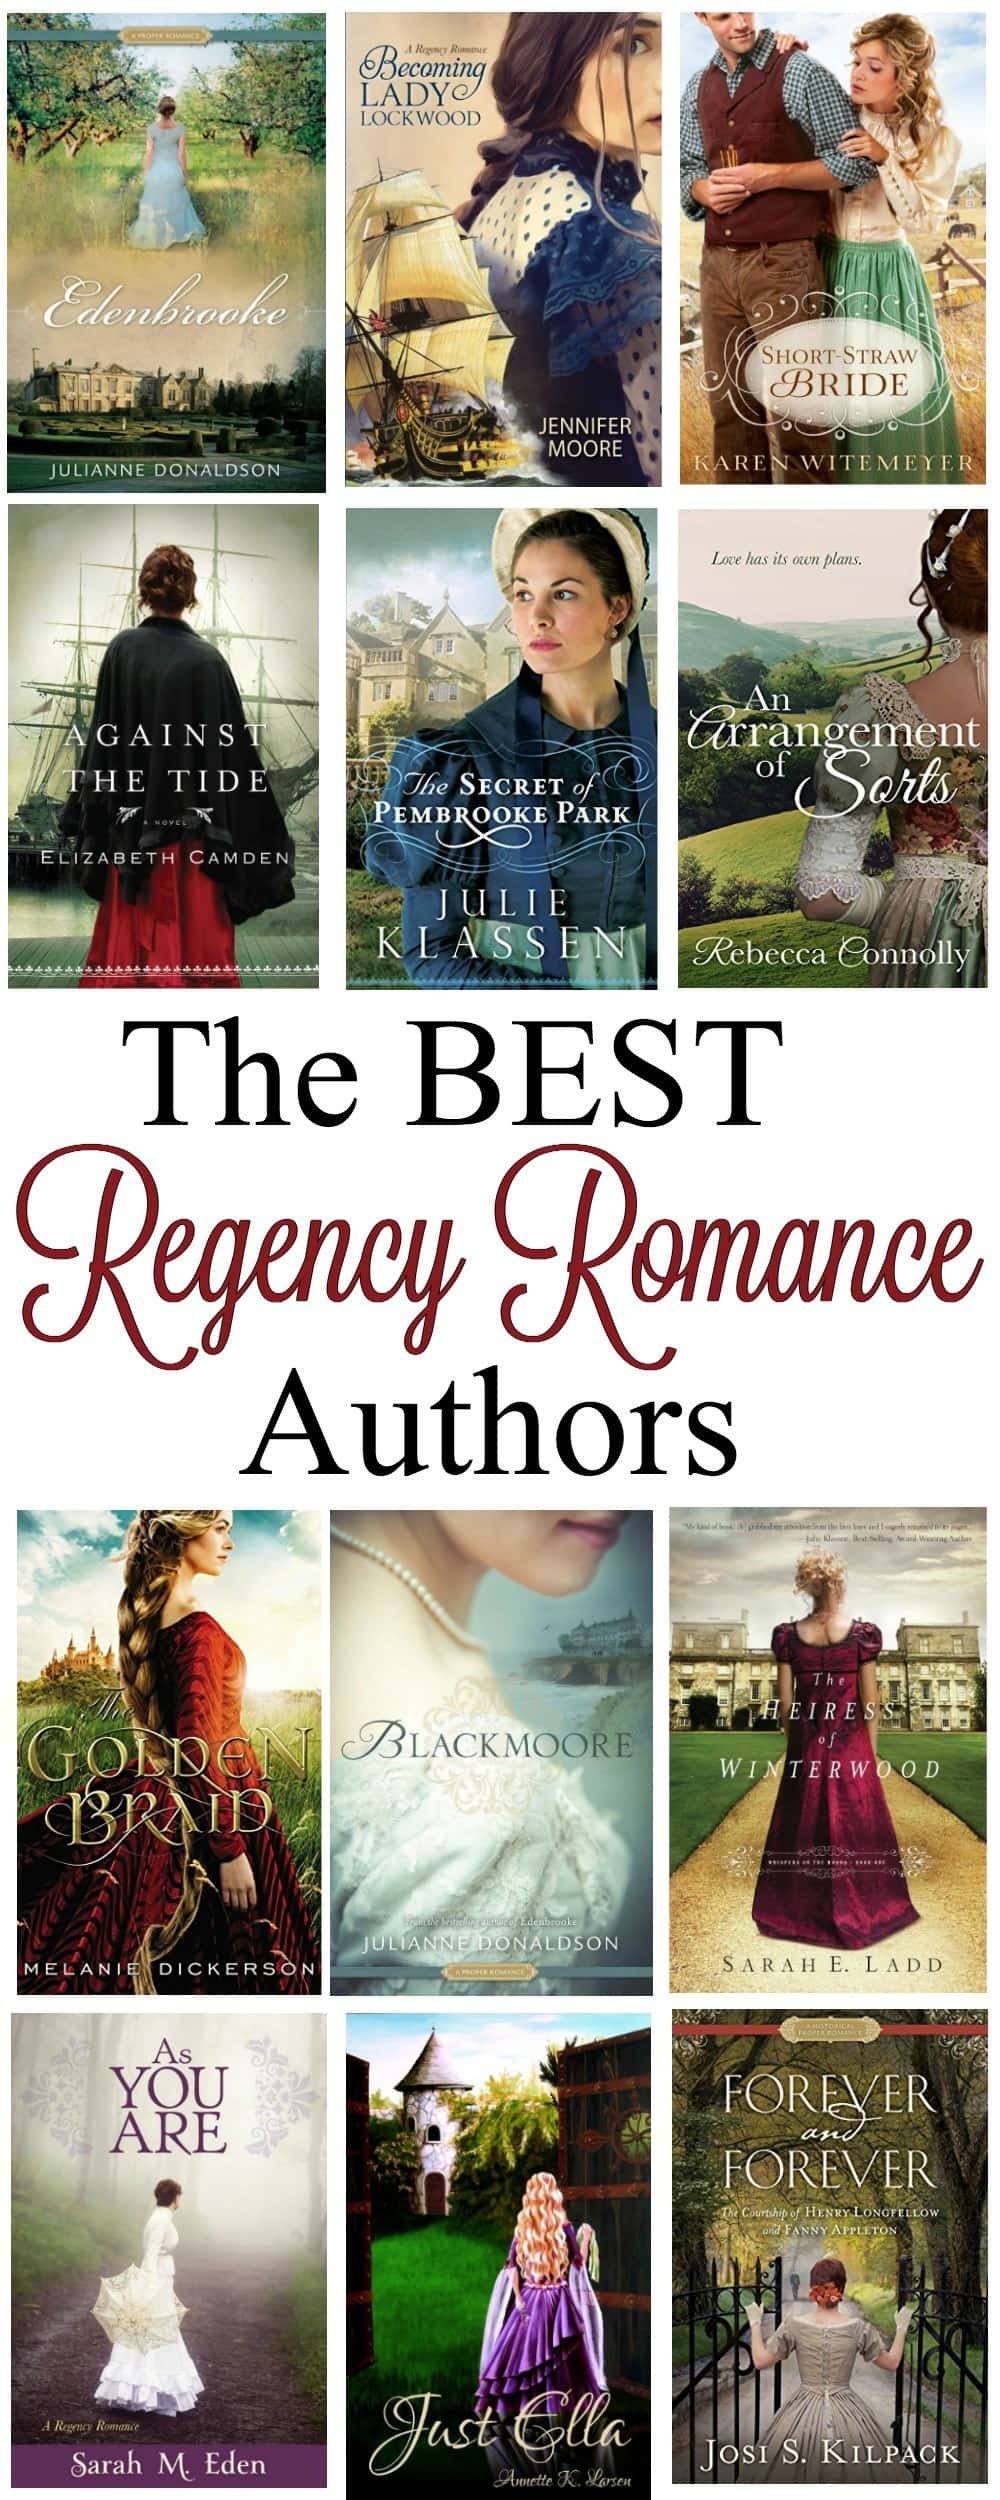 If you love to read Historical Fiction & Young Adult novels look no further than this Top Regency Romance Authors List! A collection of the best Clean Romance Authors to find a plethora of books to fill the hours!